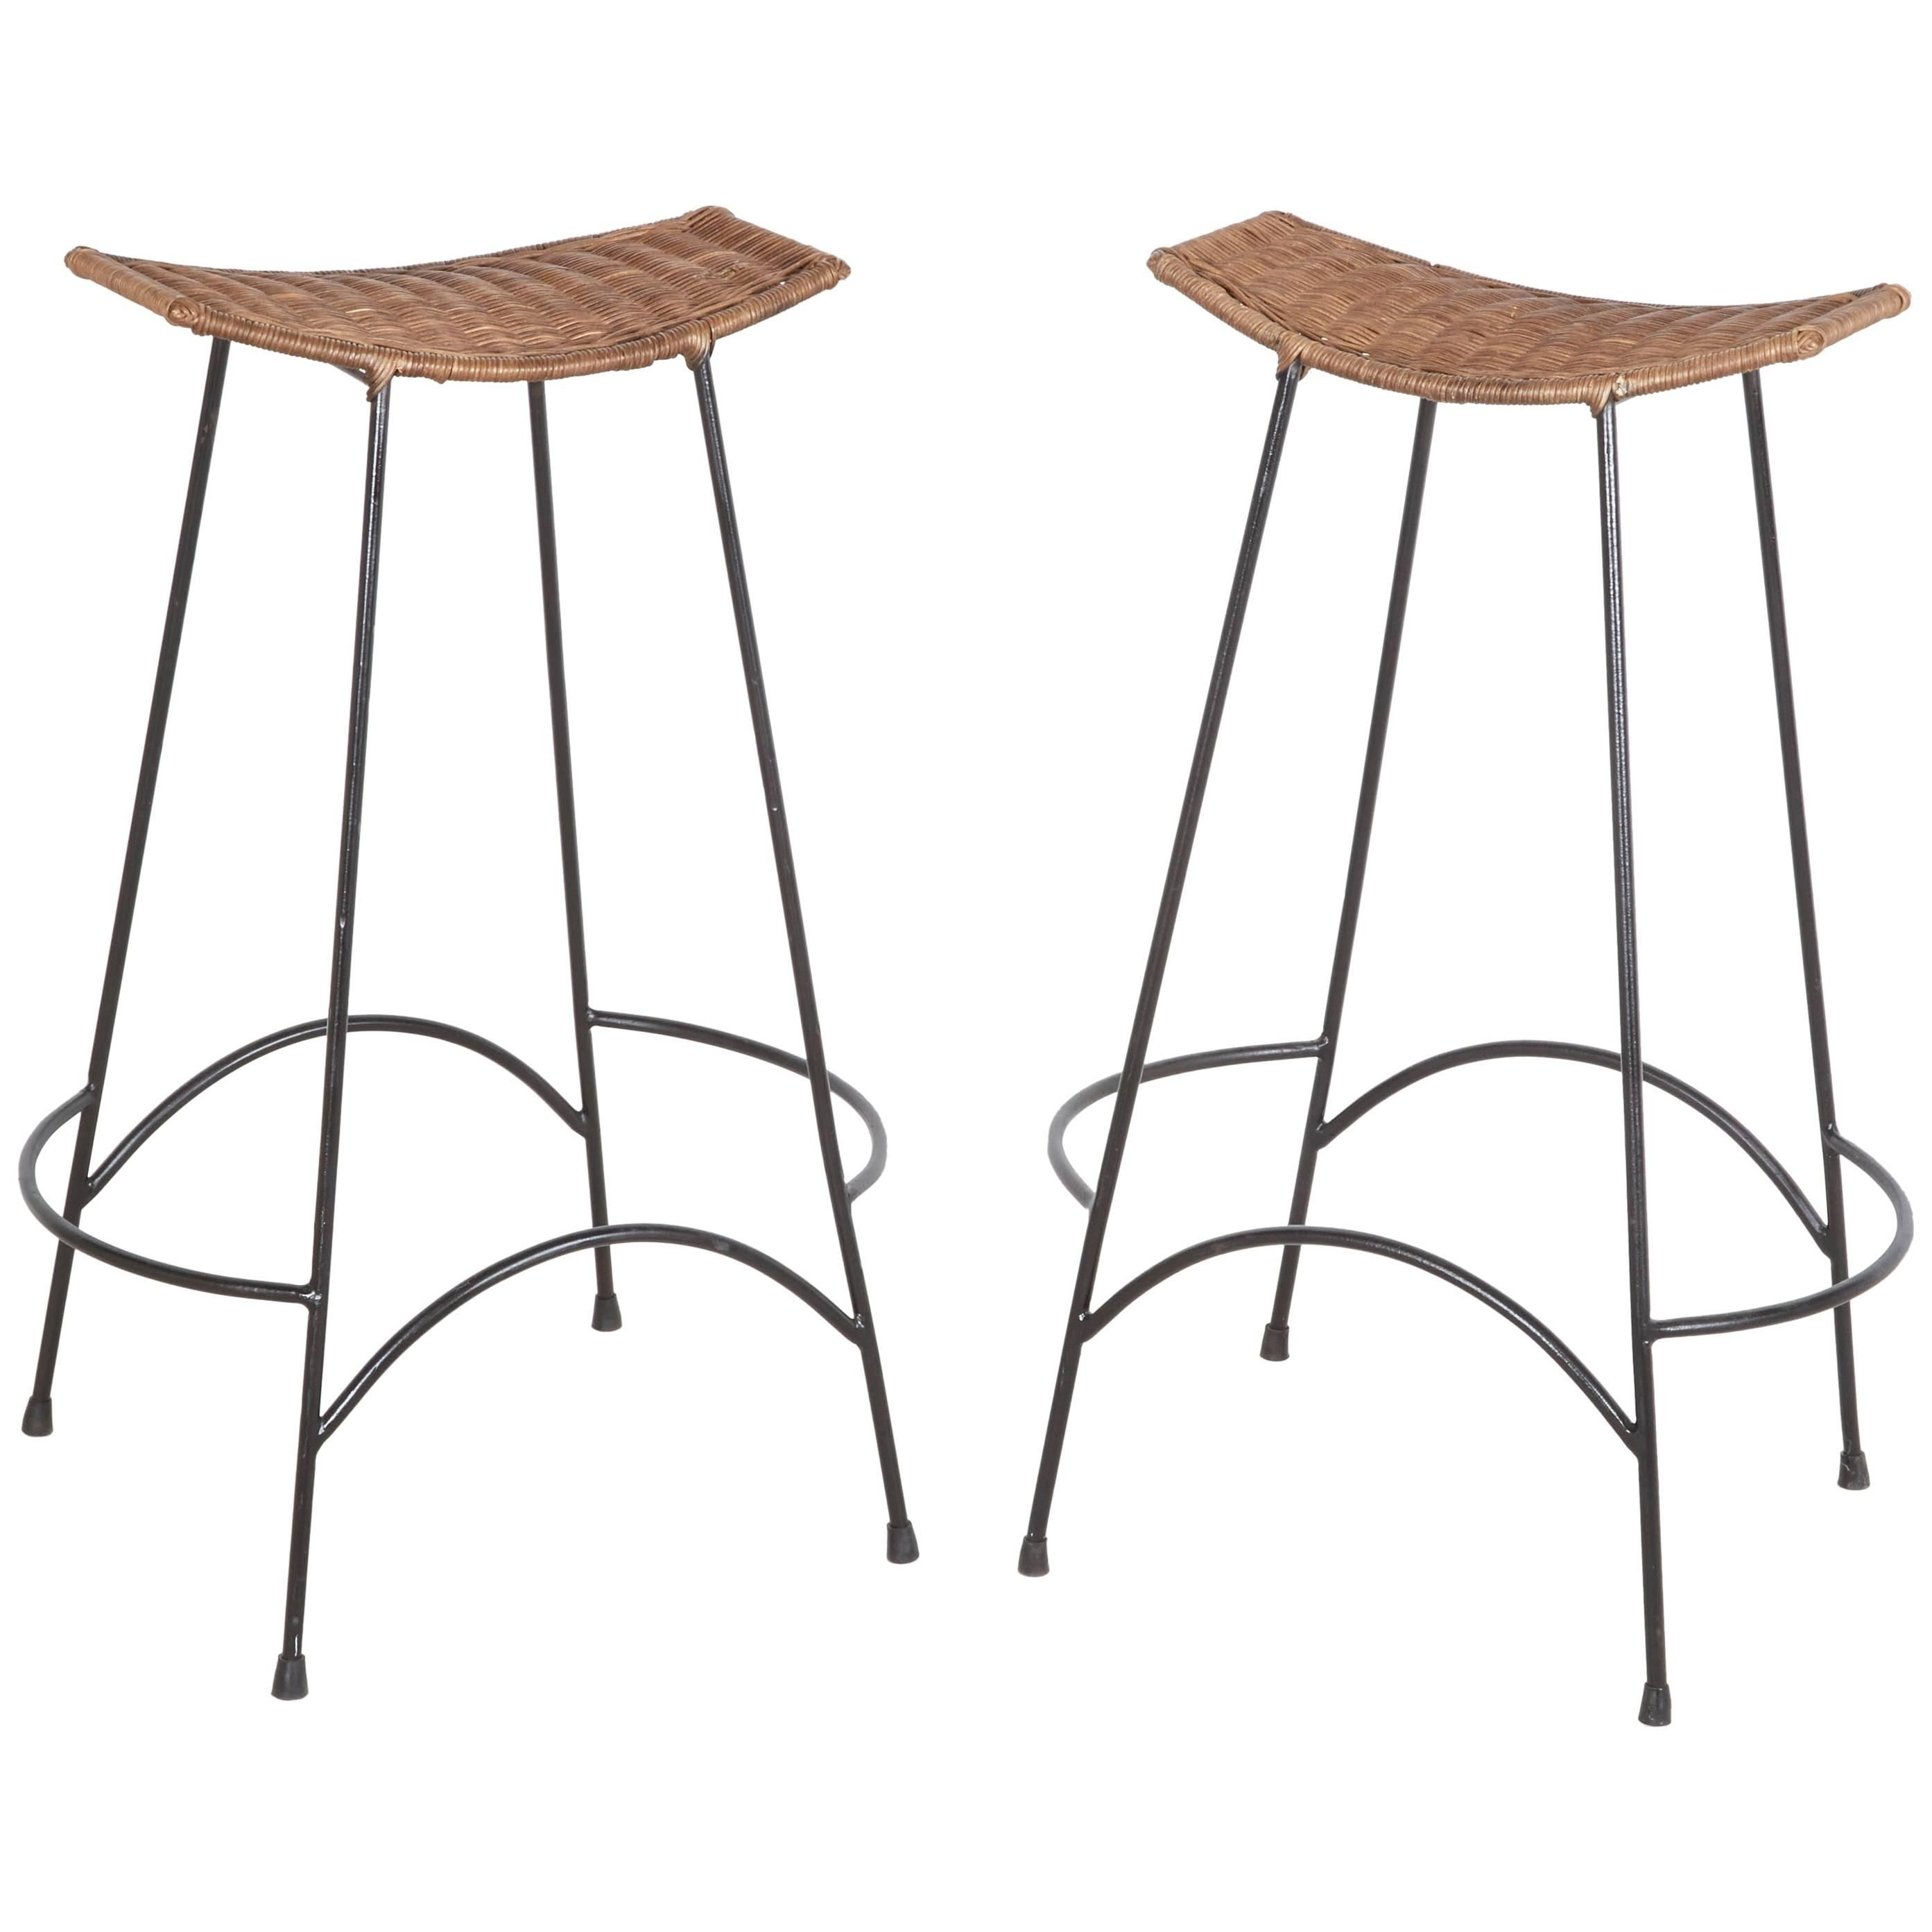 Pair Of Bar Stools In The Style Of Arthur Umanoff For Sale At 1stdibs Iron Bar Stools Modern Antique Furniture